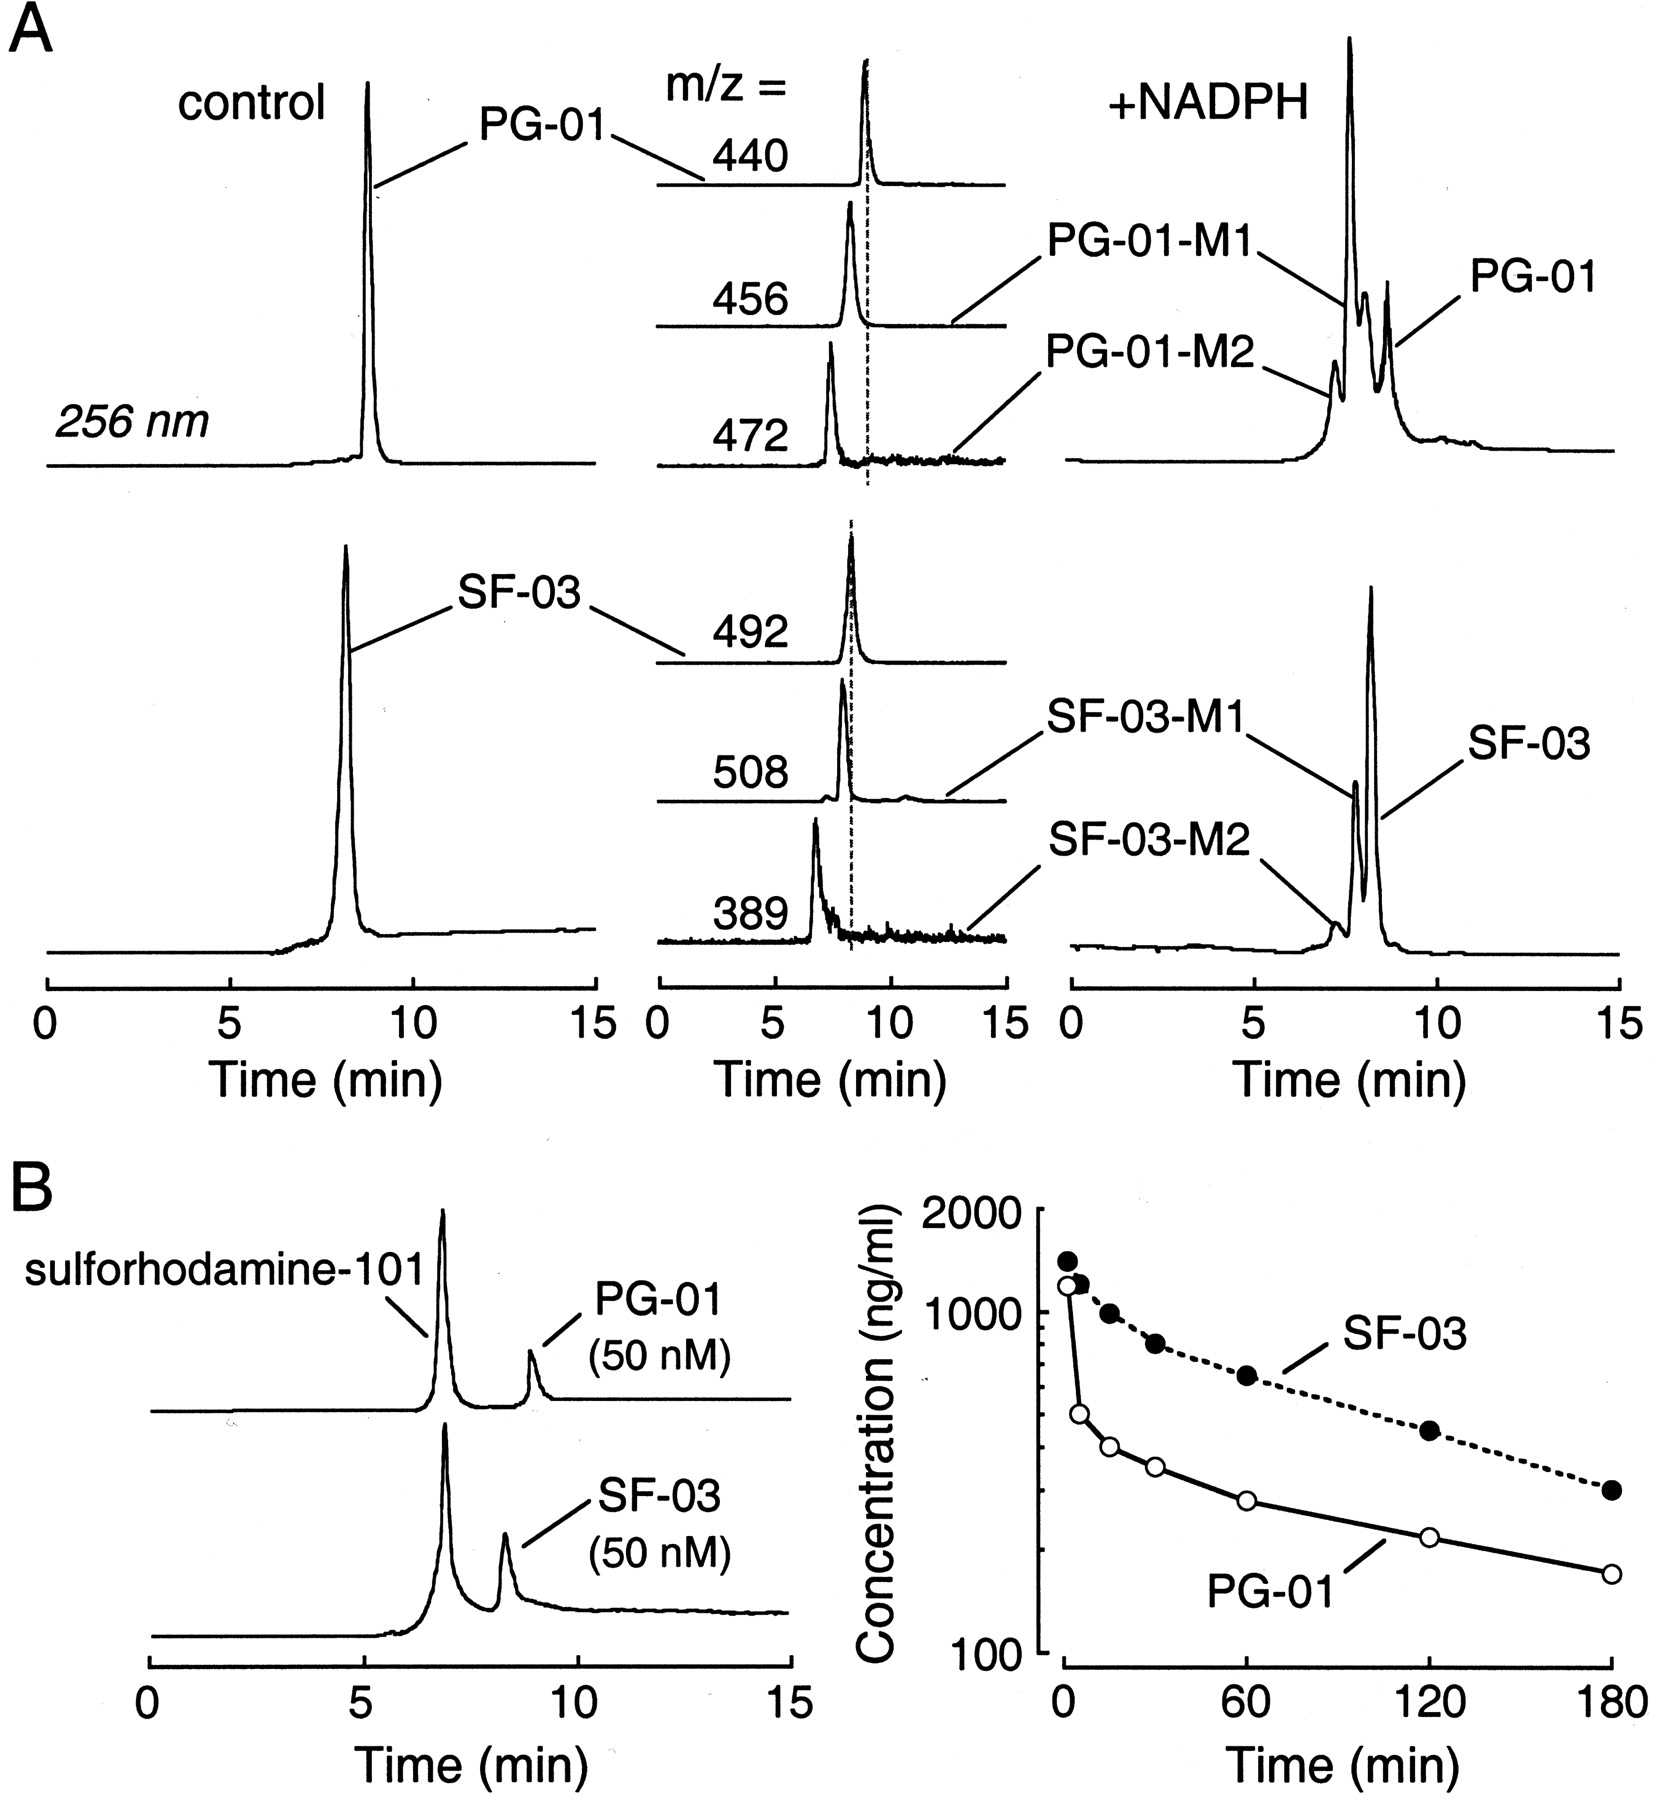 Phenylglycine And Sulfonamide Correctors Of Defective F508 Diagrams For The Most Common Methods Installing Fantasia Fans Download Figure